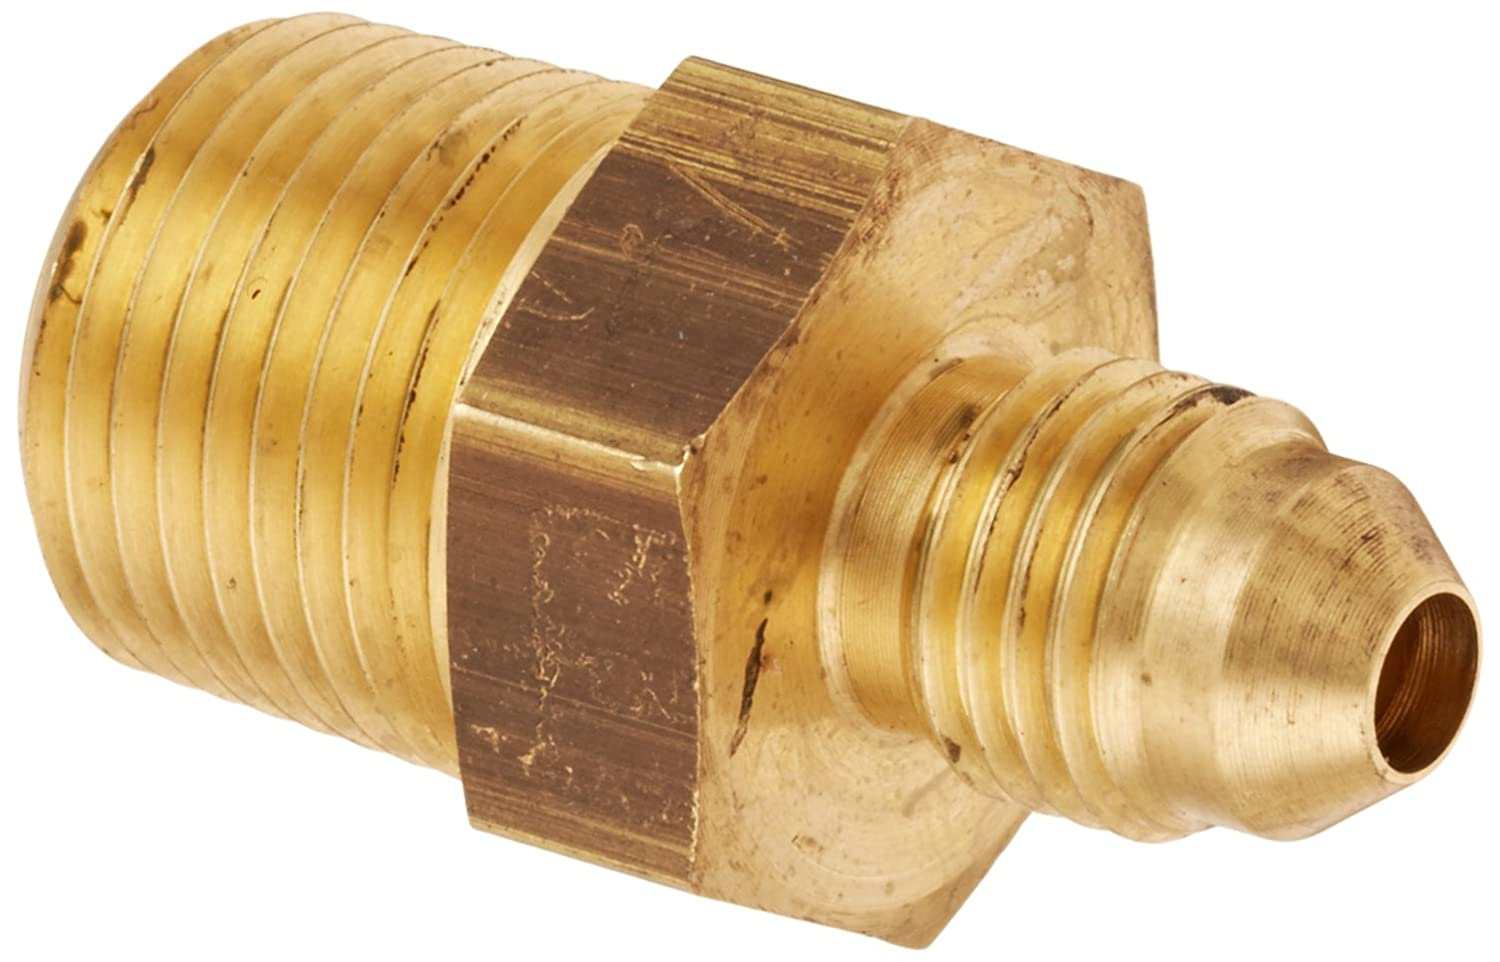 JIC 37 Degree /& NPT End Types Pack of 4 1//4 NPT Eaton Aeroquip 2021-4-6B Male Connector Male Pipe Thread Pack of 4 End Size m Brass m Male 37 Degree JIC 3//8 Tube OD x 3//8 JIC 3//8 Tube OD Eaton Products